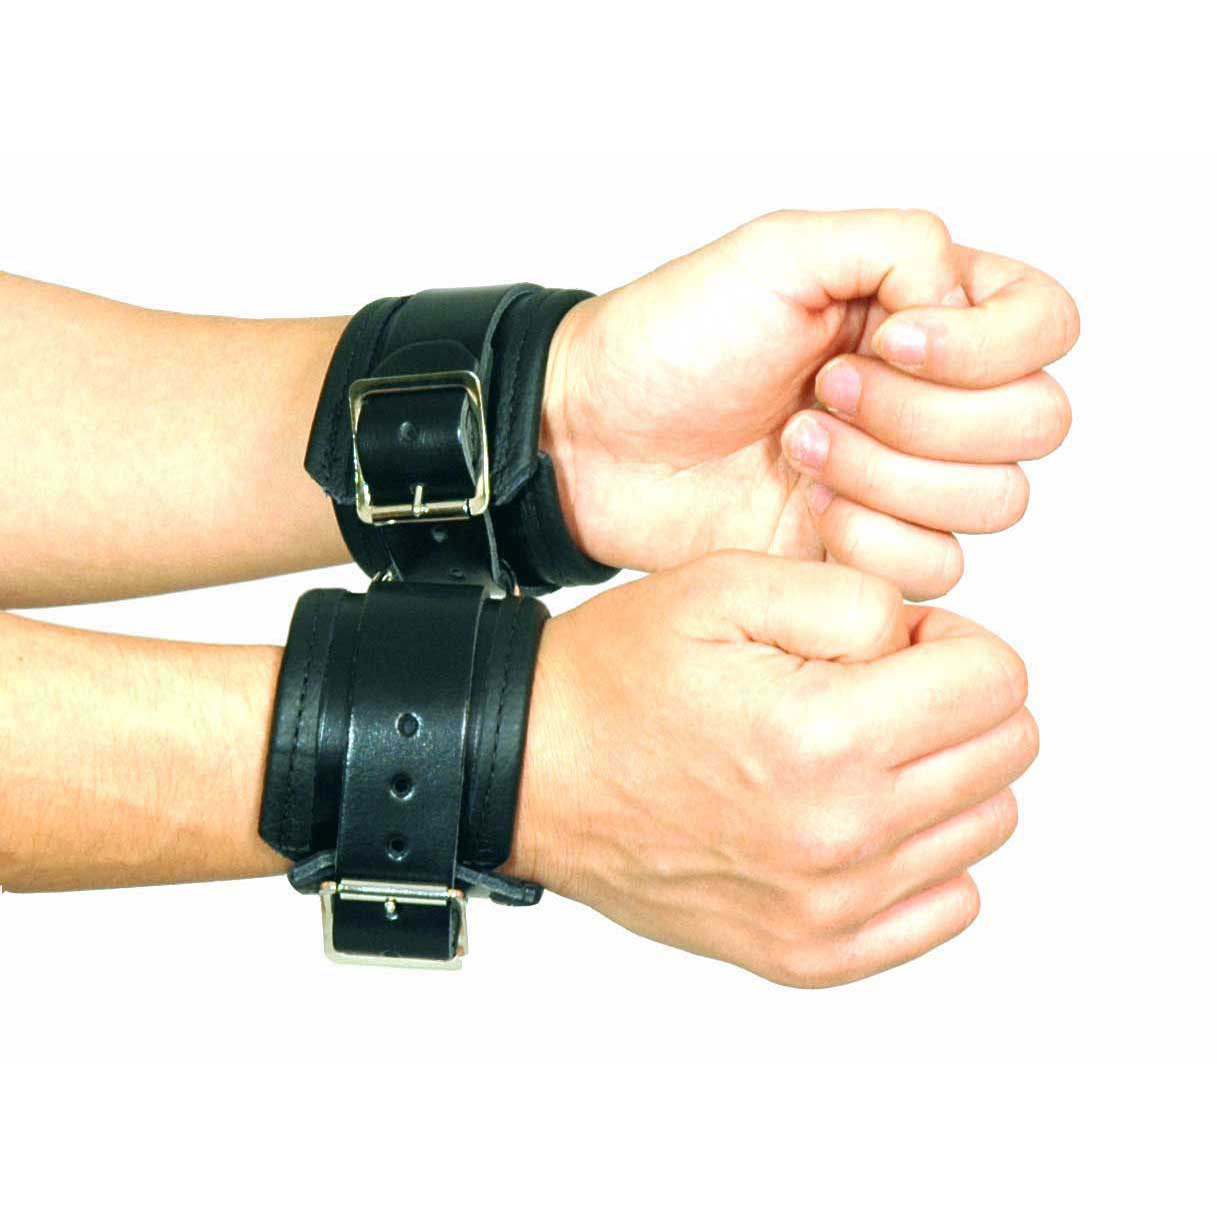 CUF 1-2 - Pair of Leather Wrist Cuffs